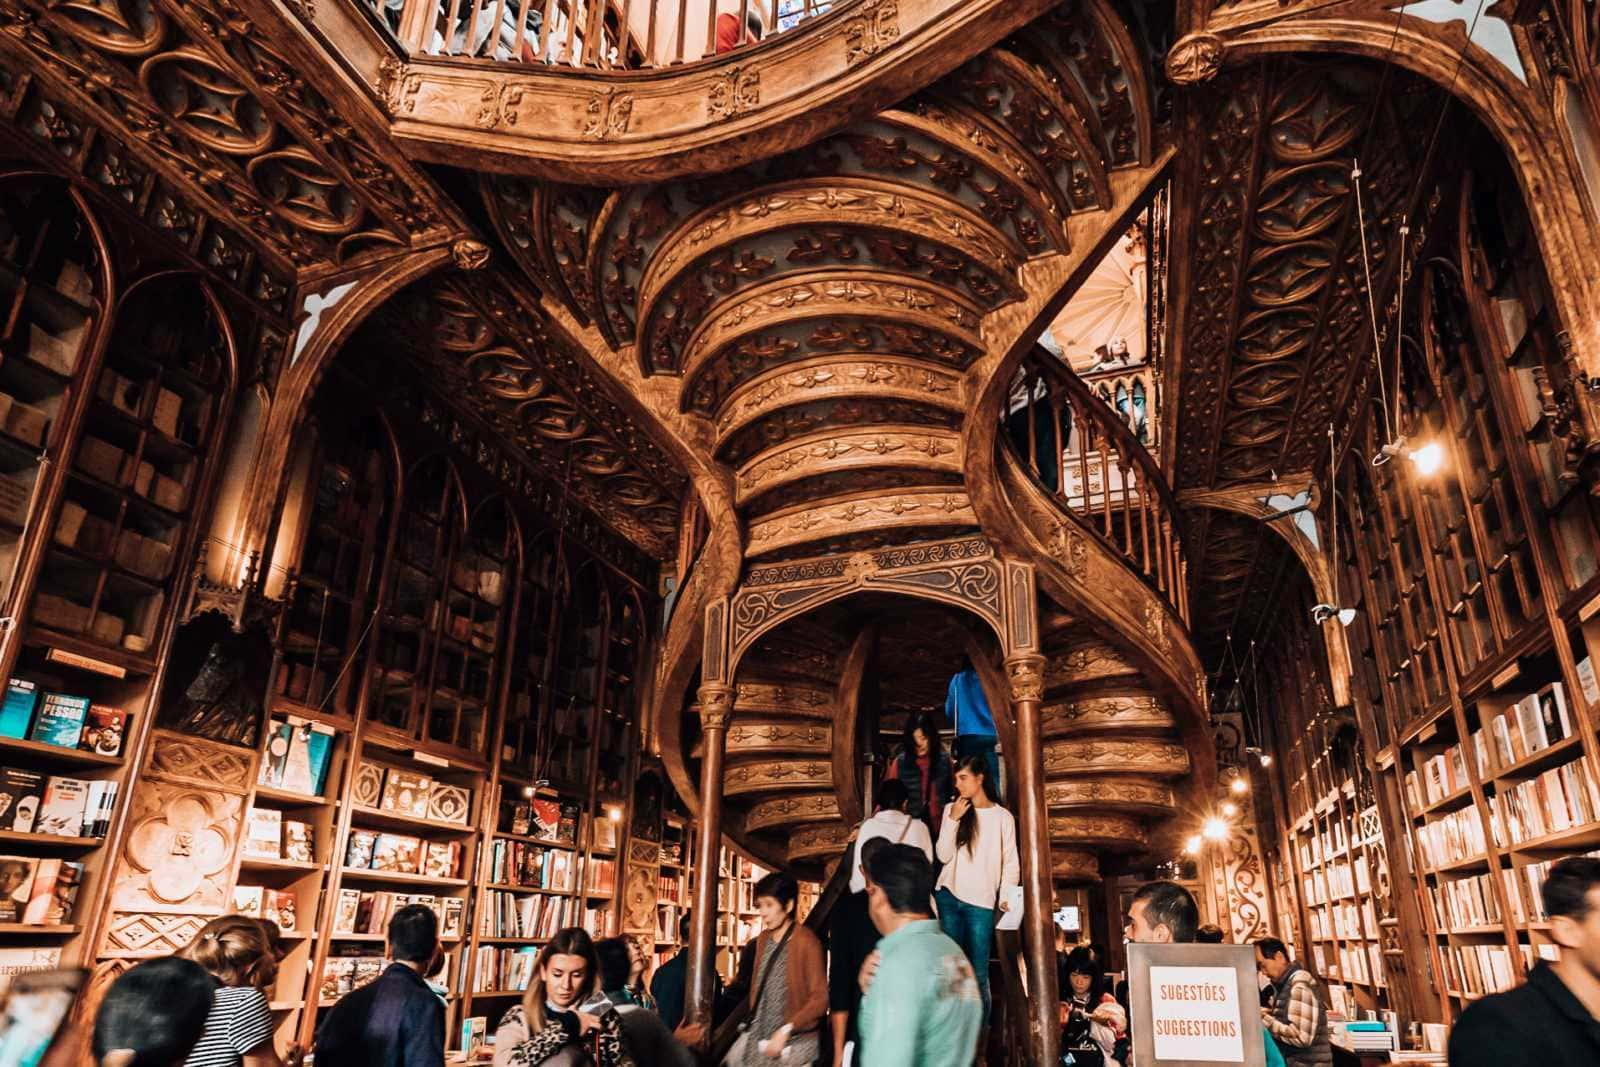 Livraria Lello in Porto: The Harry Potter bookstore